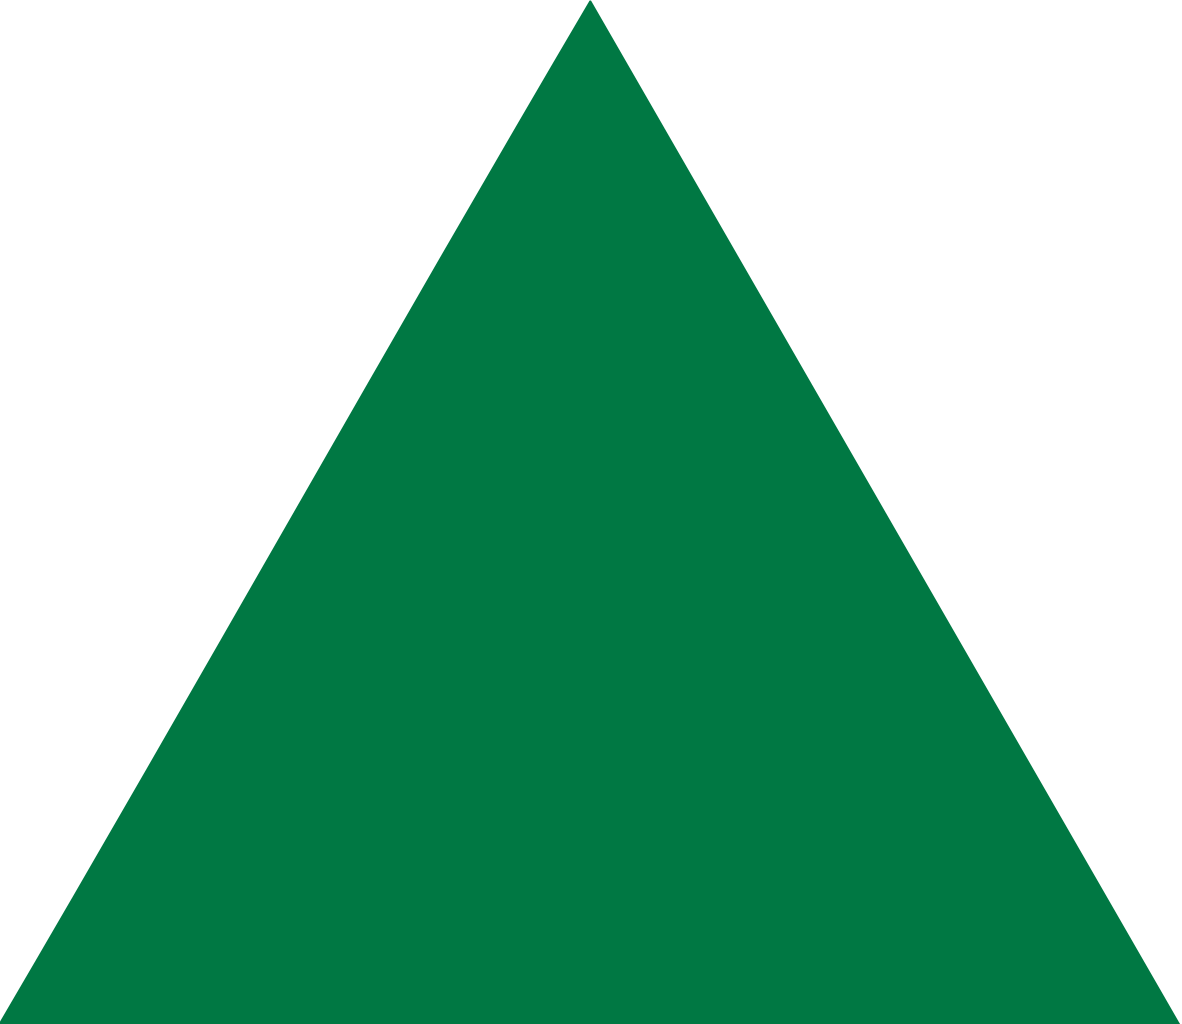 Green Normal Triangle Png image #42404